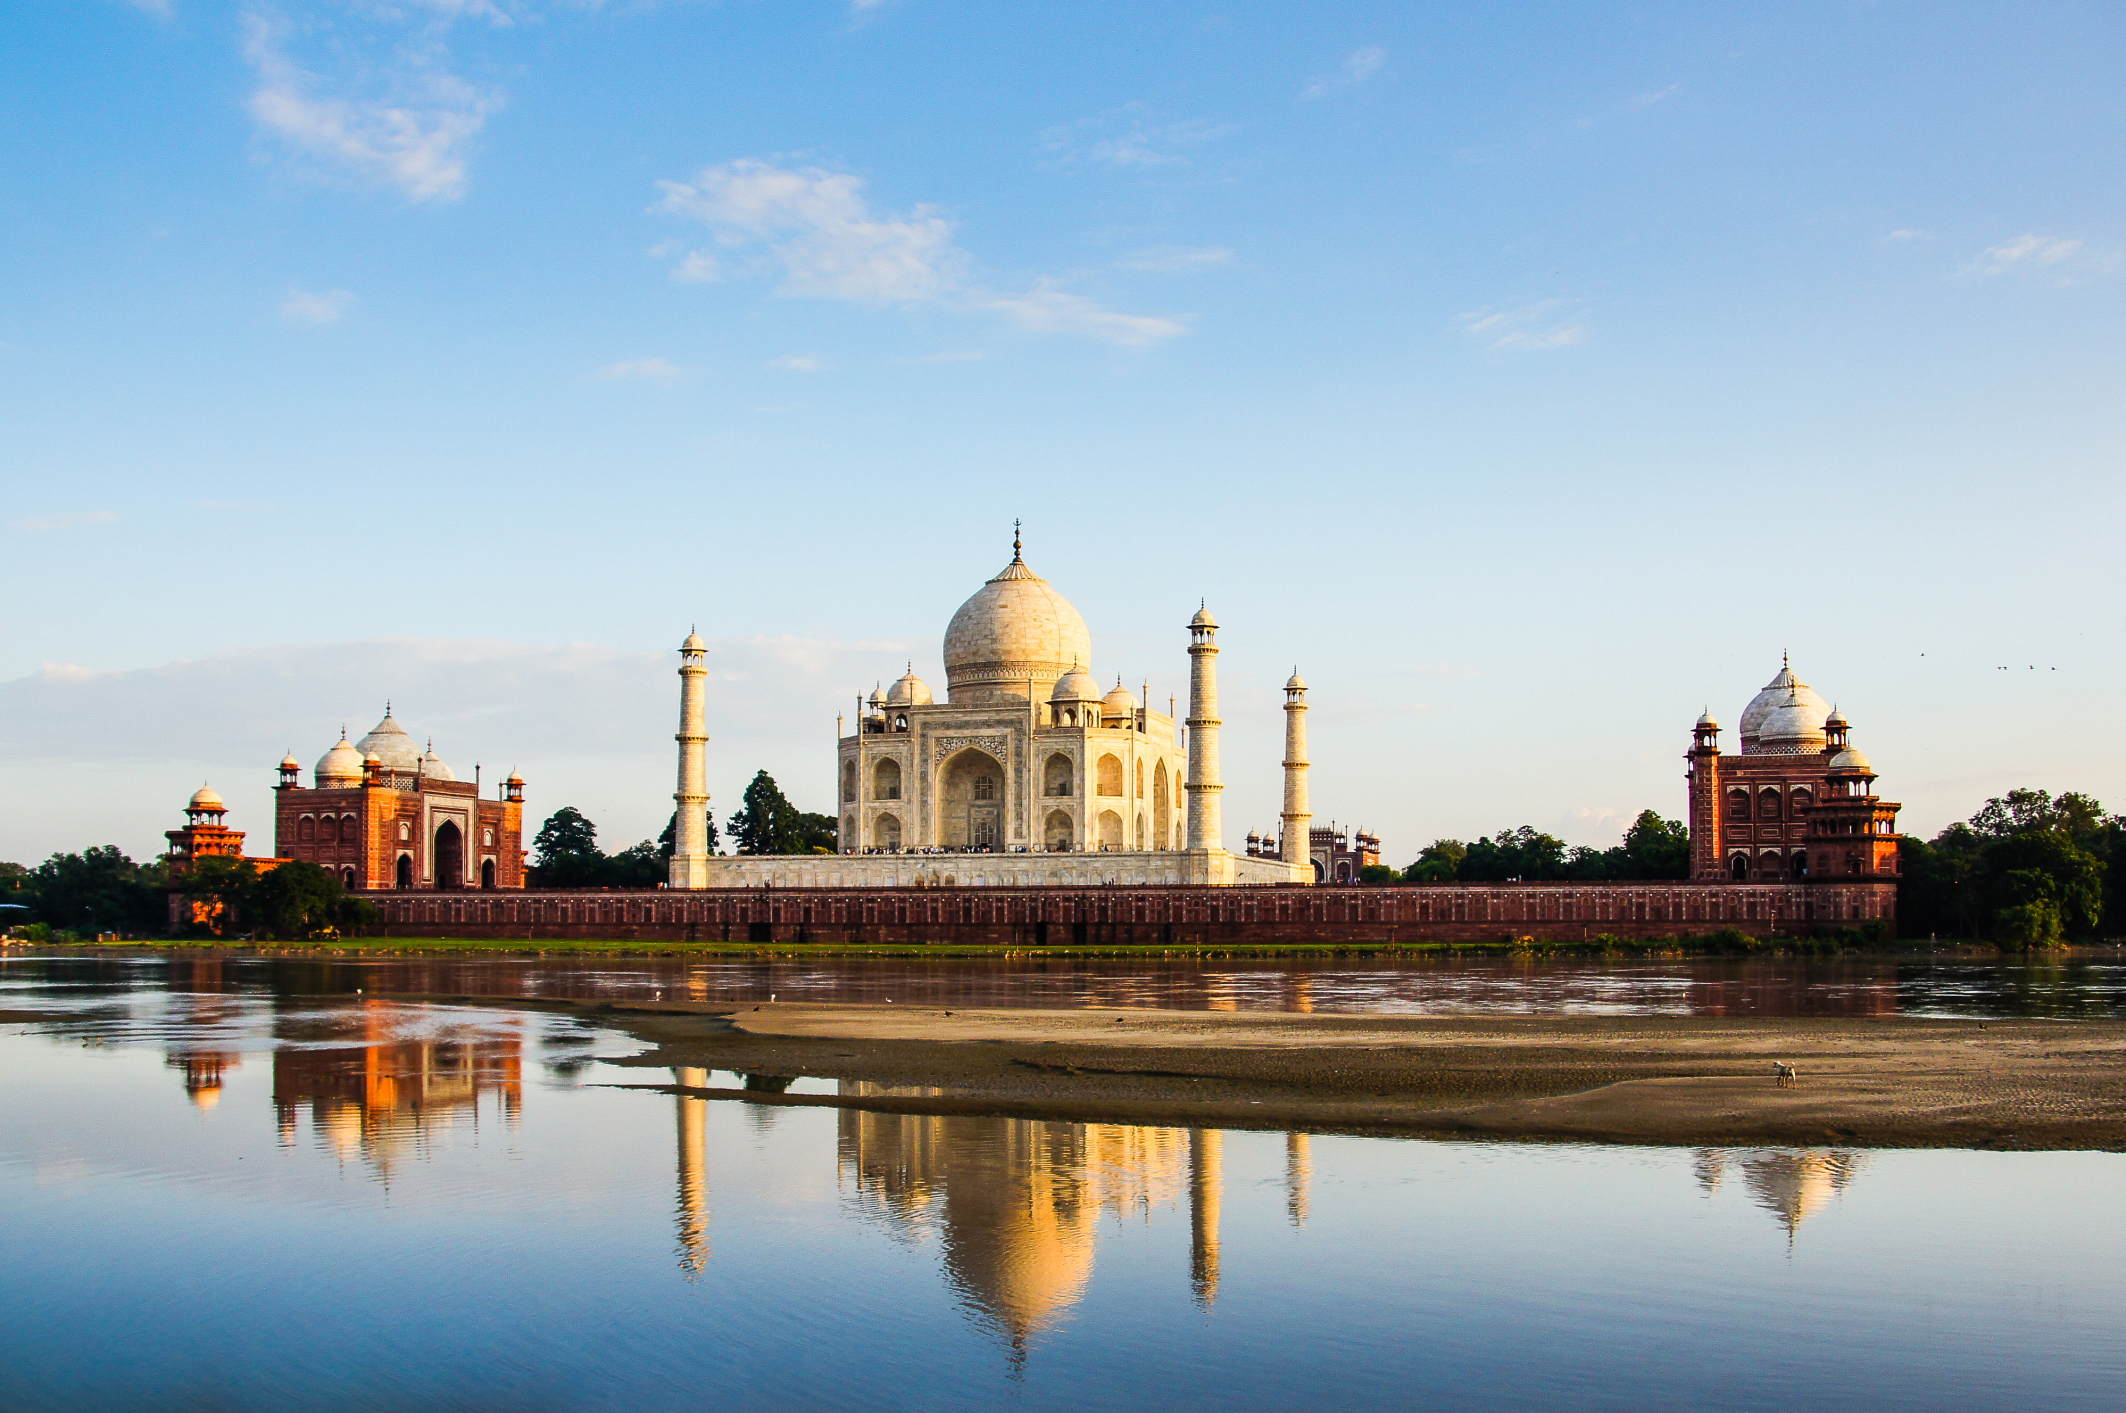 taj-mahal-viewed-across-river